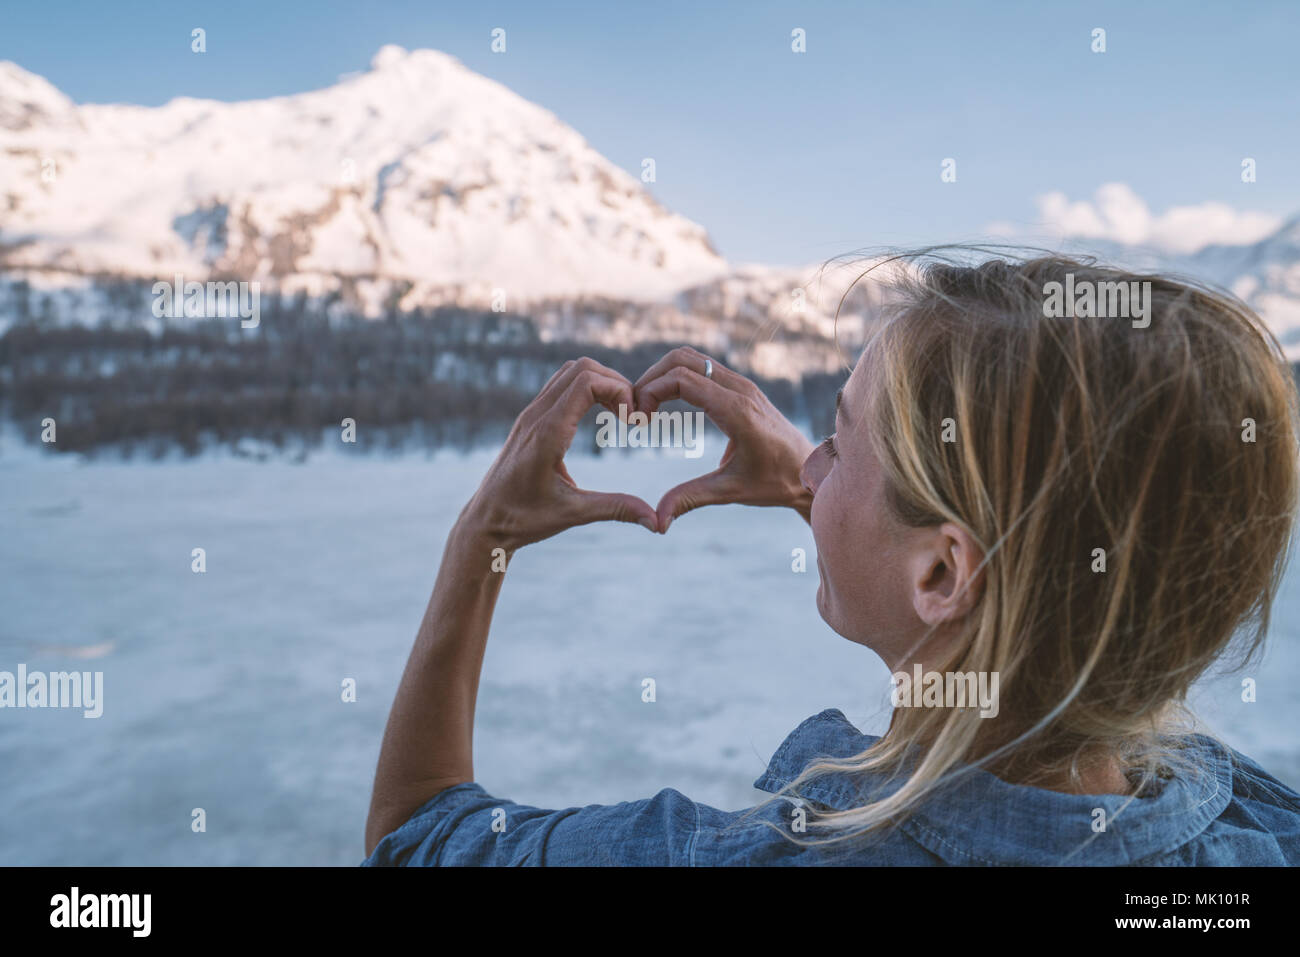 Young woman making a heart shape finger frame over frozen lake and snowcapped mountains. People love nature environment concept. Shot in Switzerland Stock Photo